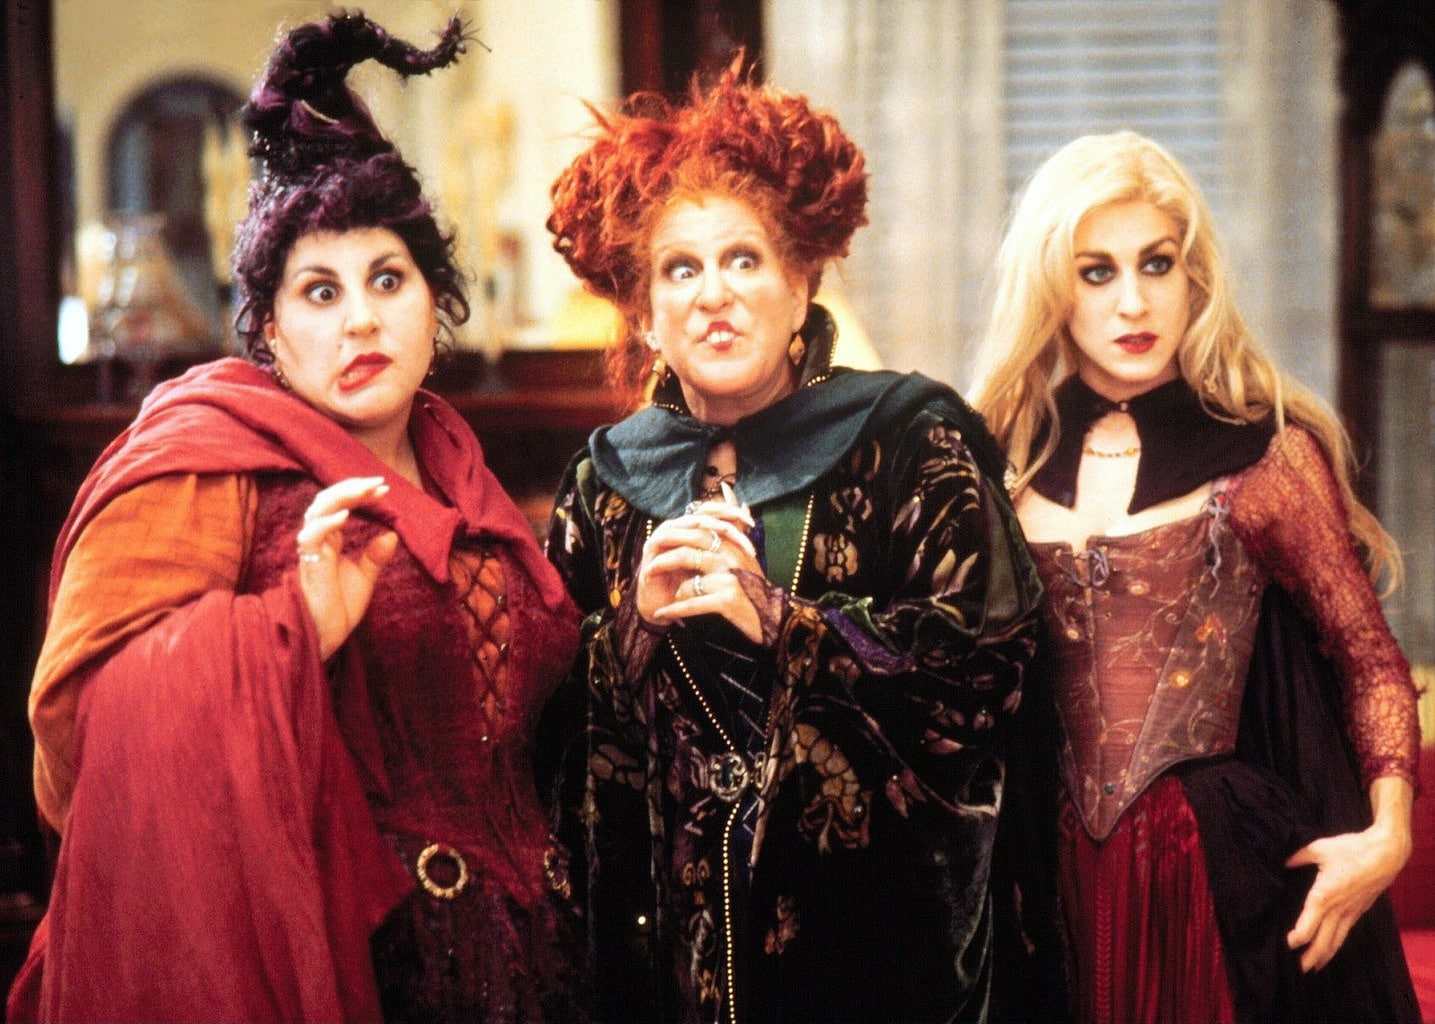 Hocus Pocus - screenshot of the Sanderson sisters dressed in their witch robes in the movie